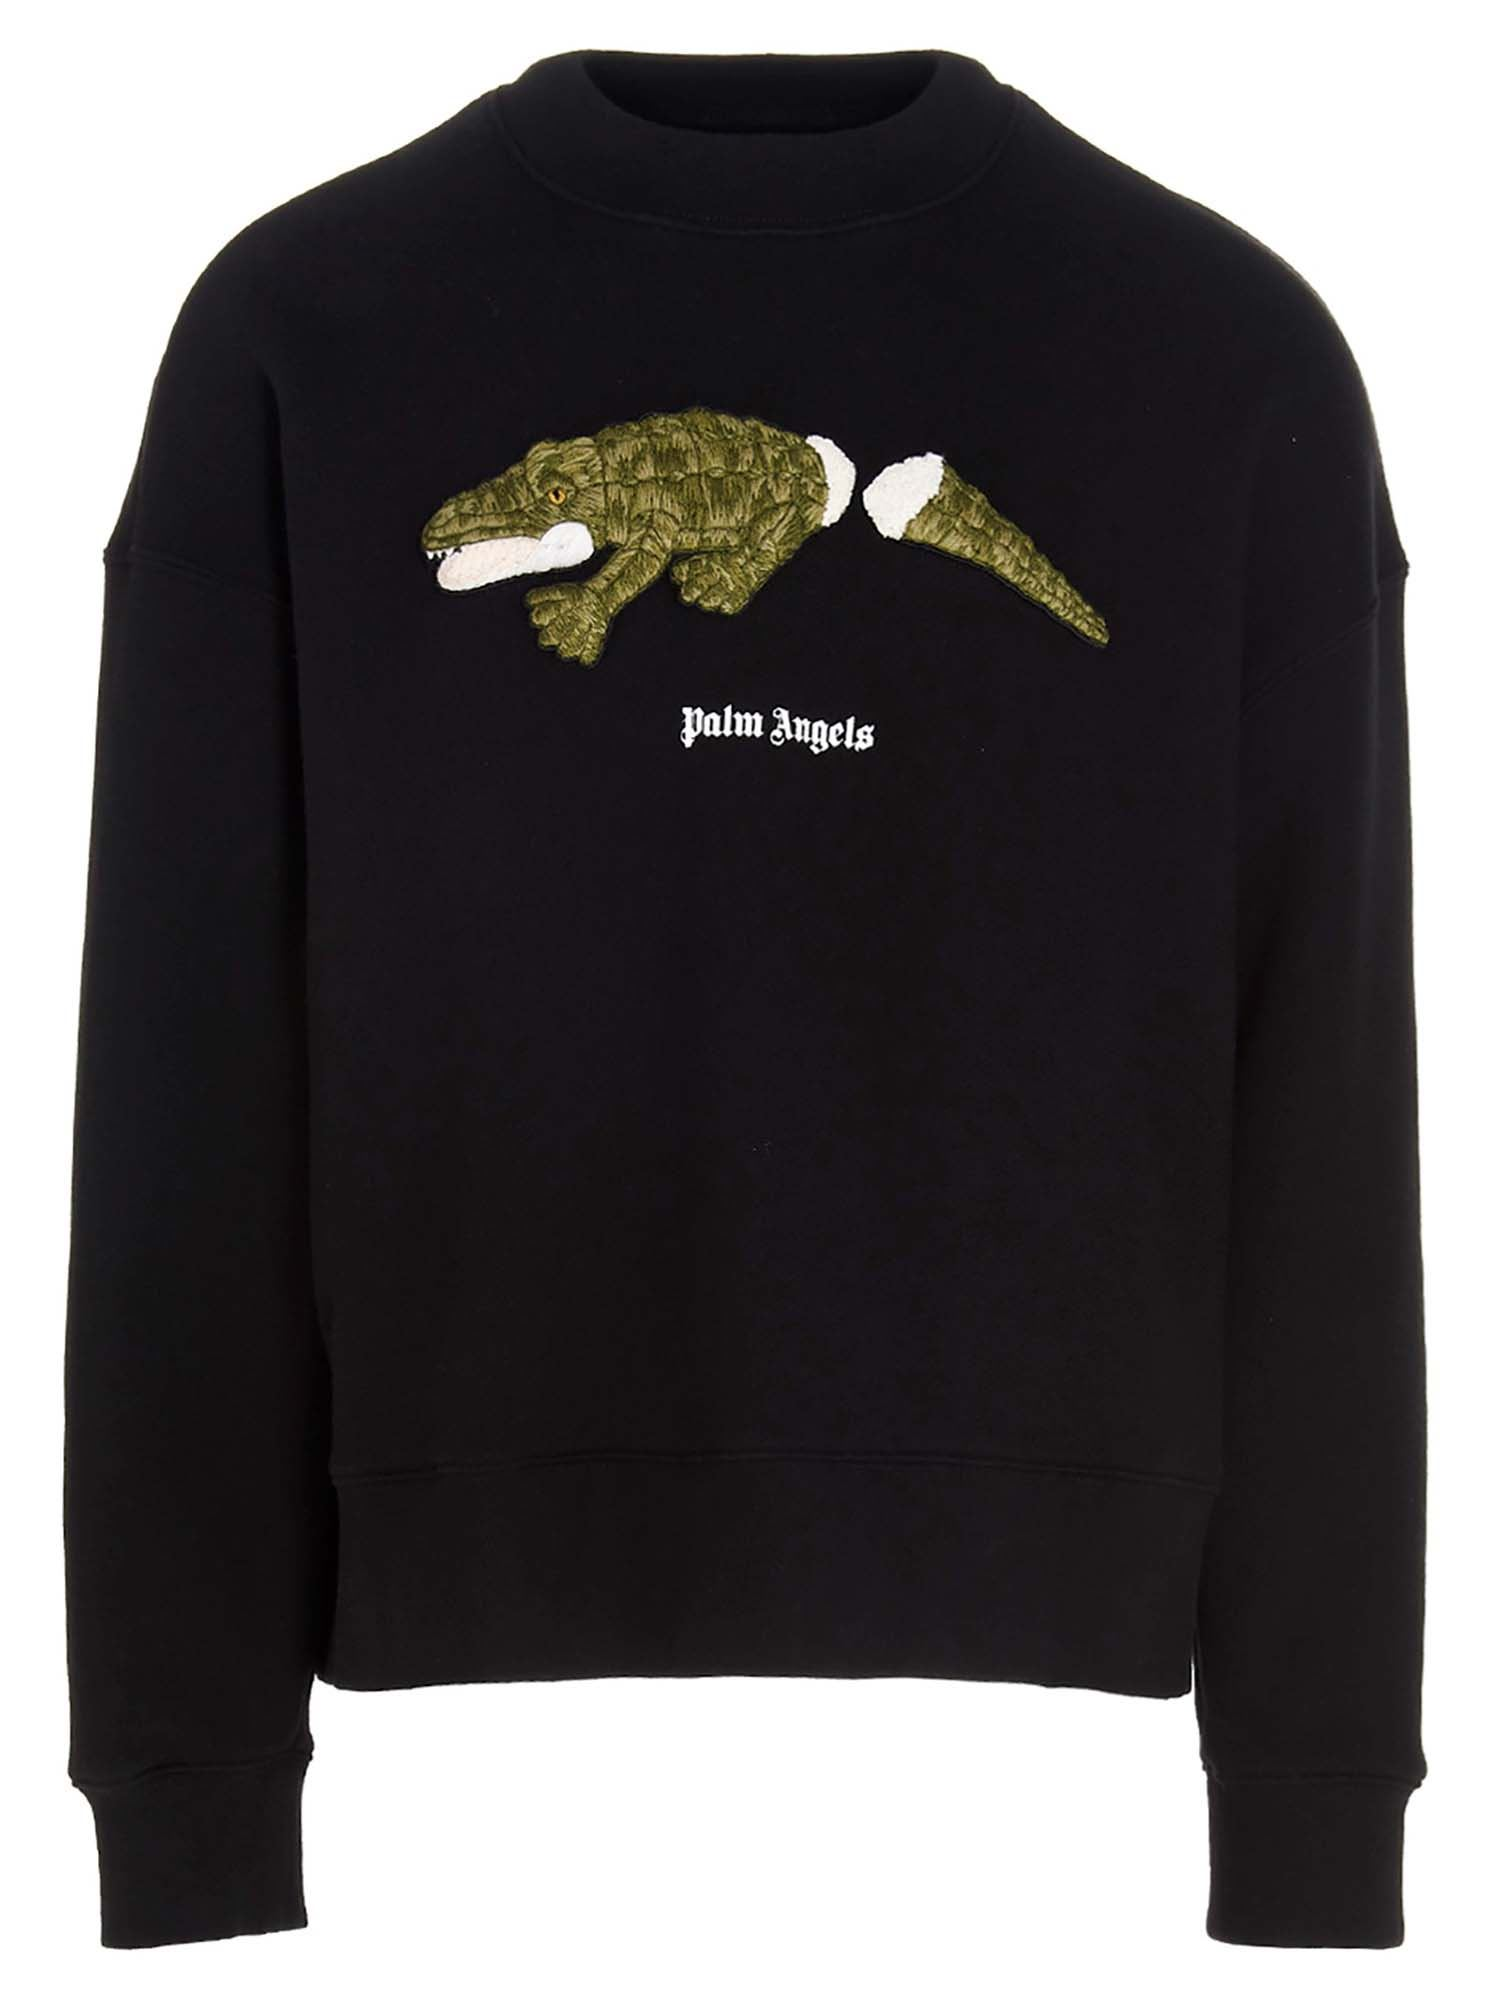 Palm Angels CROCO SWEATSHIRT IN BLACK